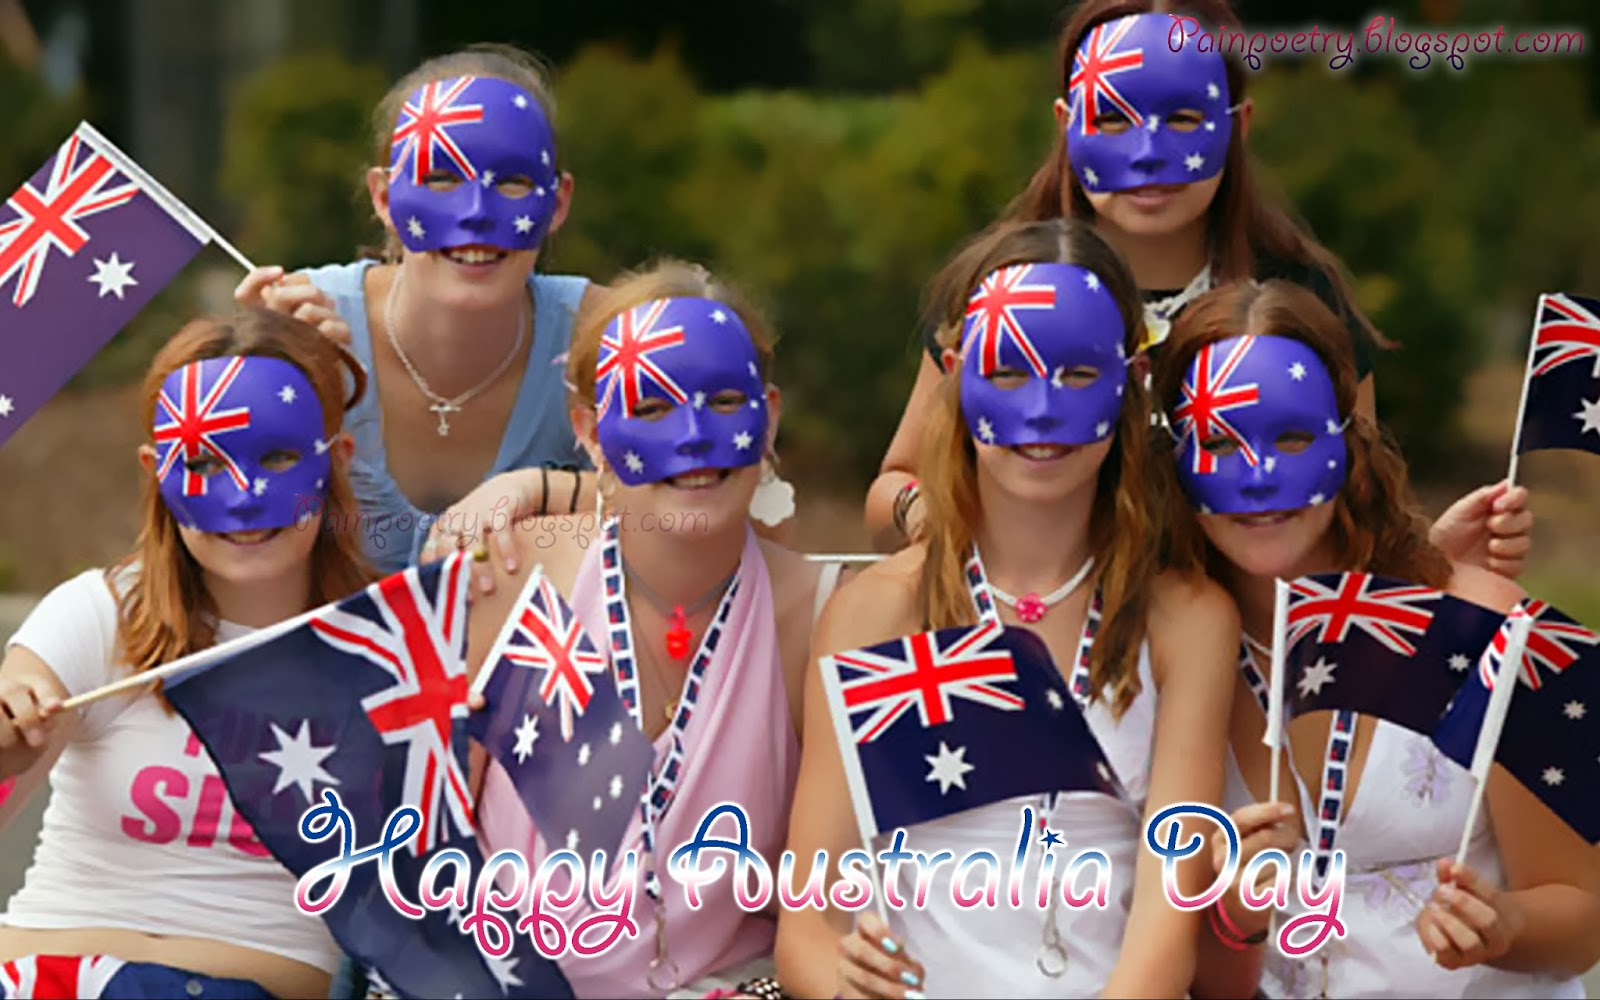 Happy-Australia-Day-Celebrations-Of-26-January-Wishes-Greetings,-Print-Map-Of-Australia-On-Mask-Wearing-Image-HD